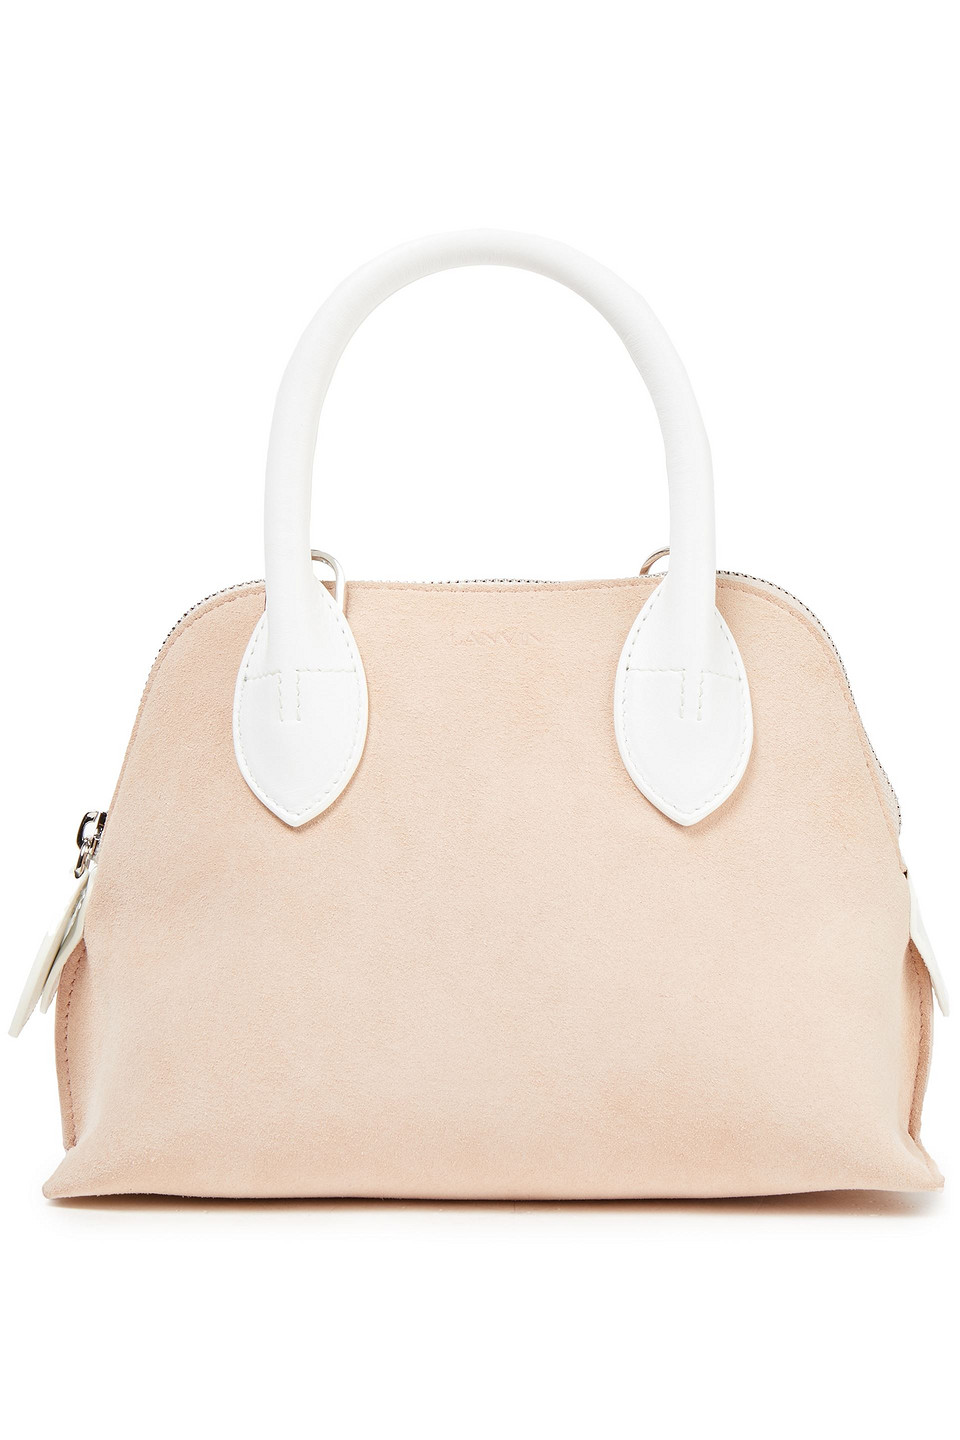 LANVIN | Lanvin Woman Magot Mini Leather And Suede Shoulder Bag Pastel Pink | Clouty